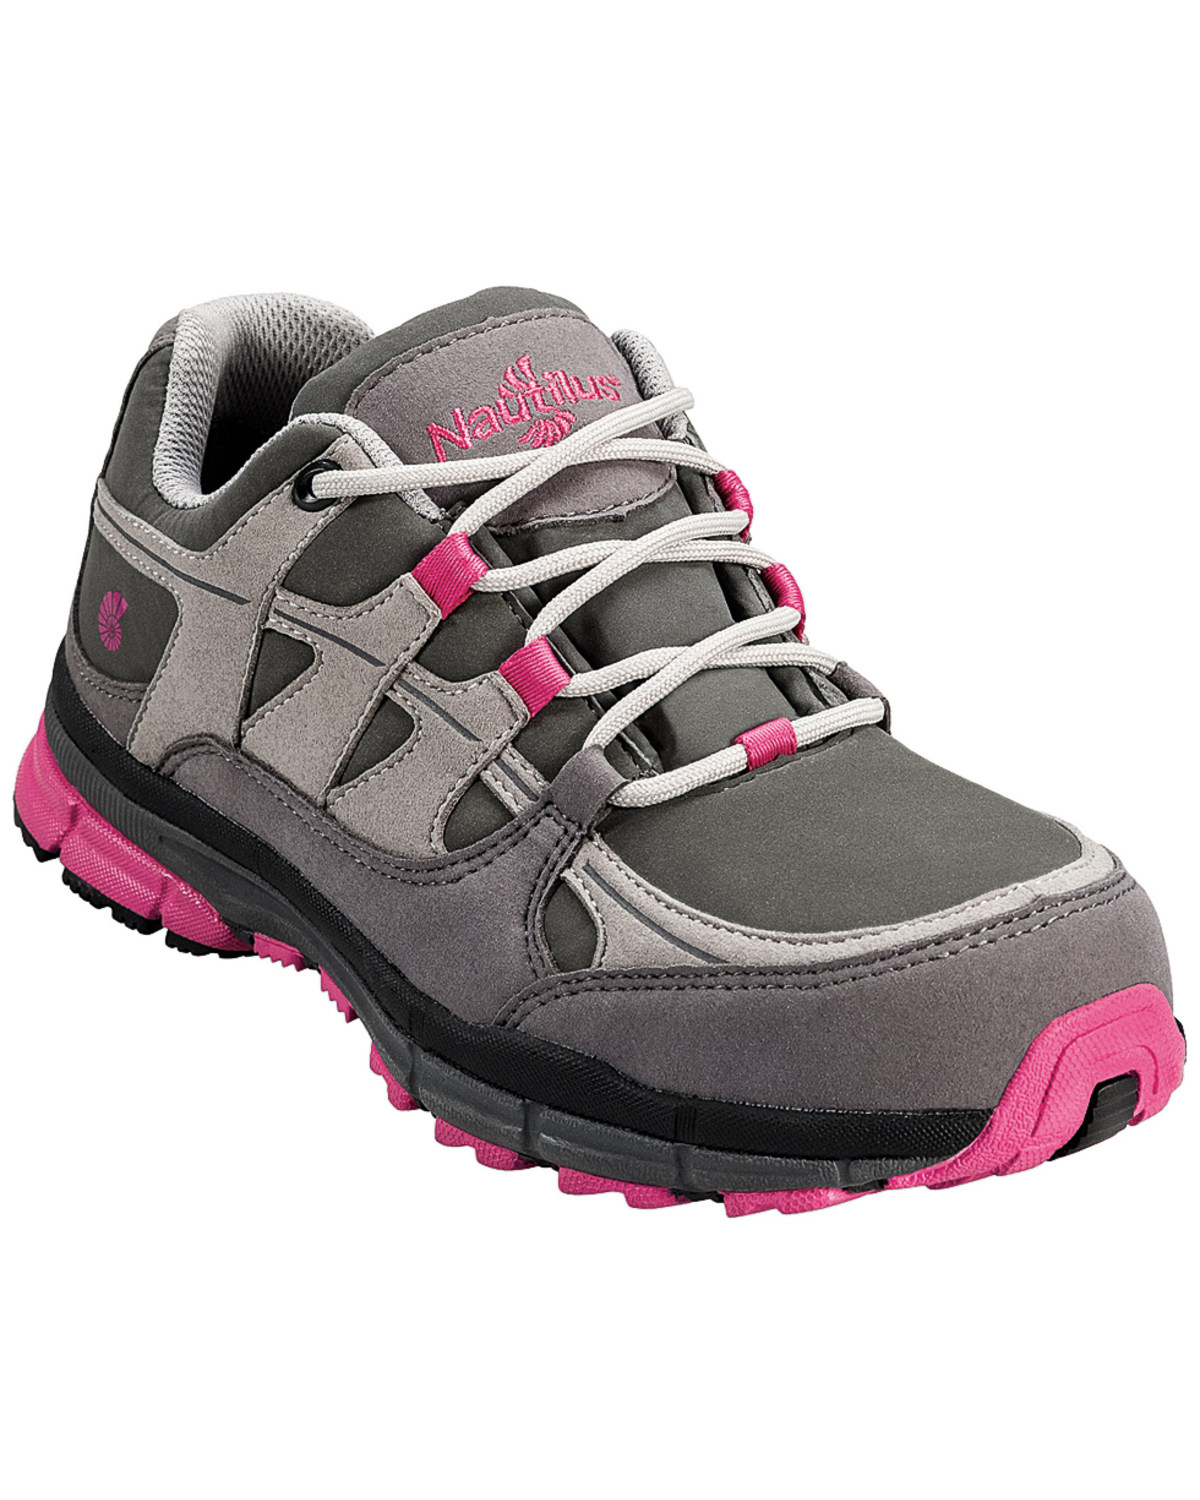 Nautilus Women s Steel Toe Slip Resistant ESD Athletic Safety Shoes ... ddd3f8a6f9